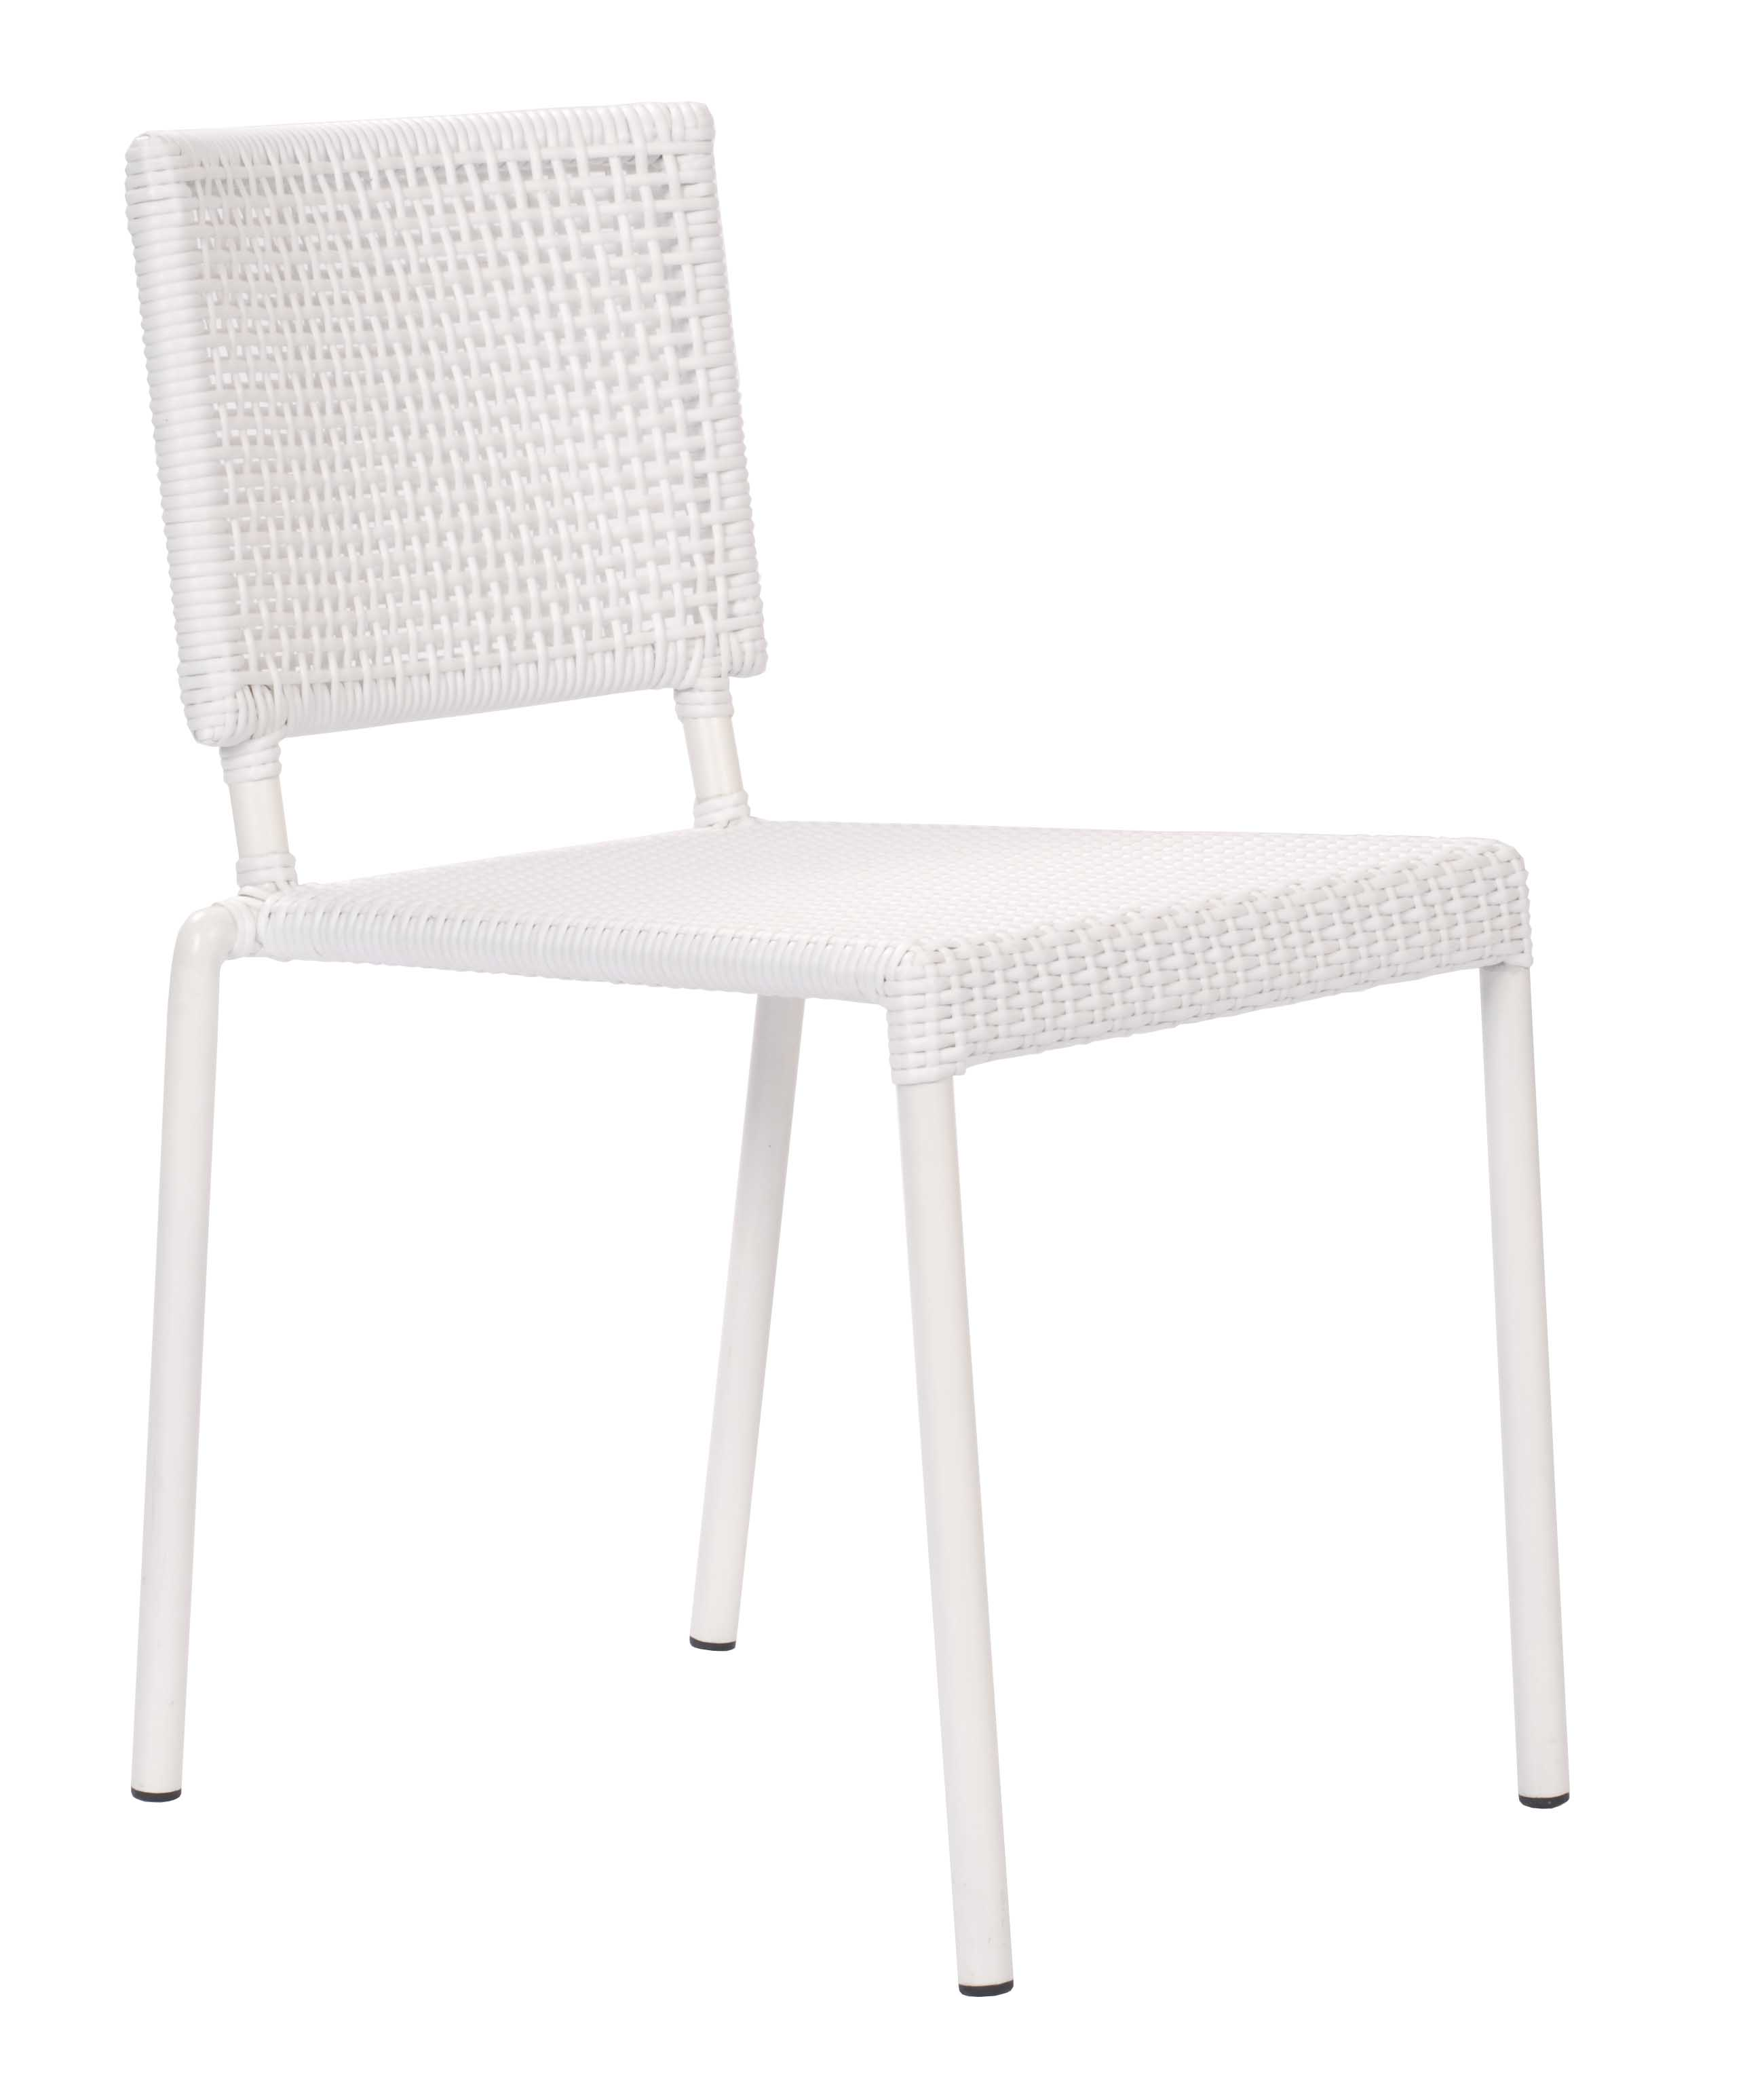 Lido Outdoor Dining Chair White